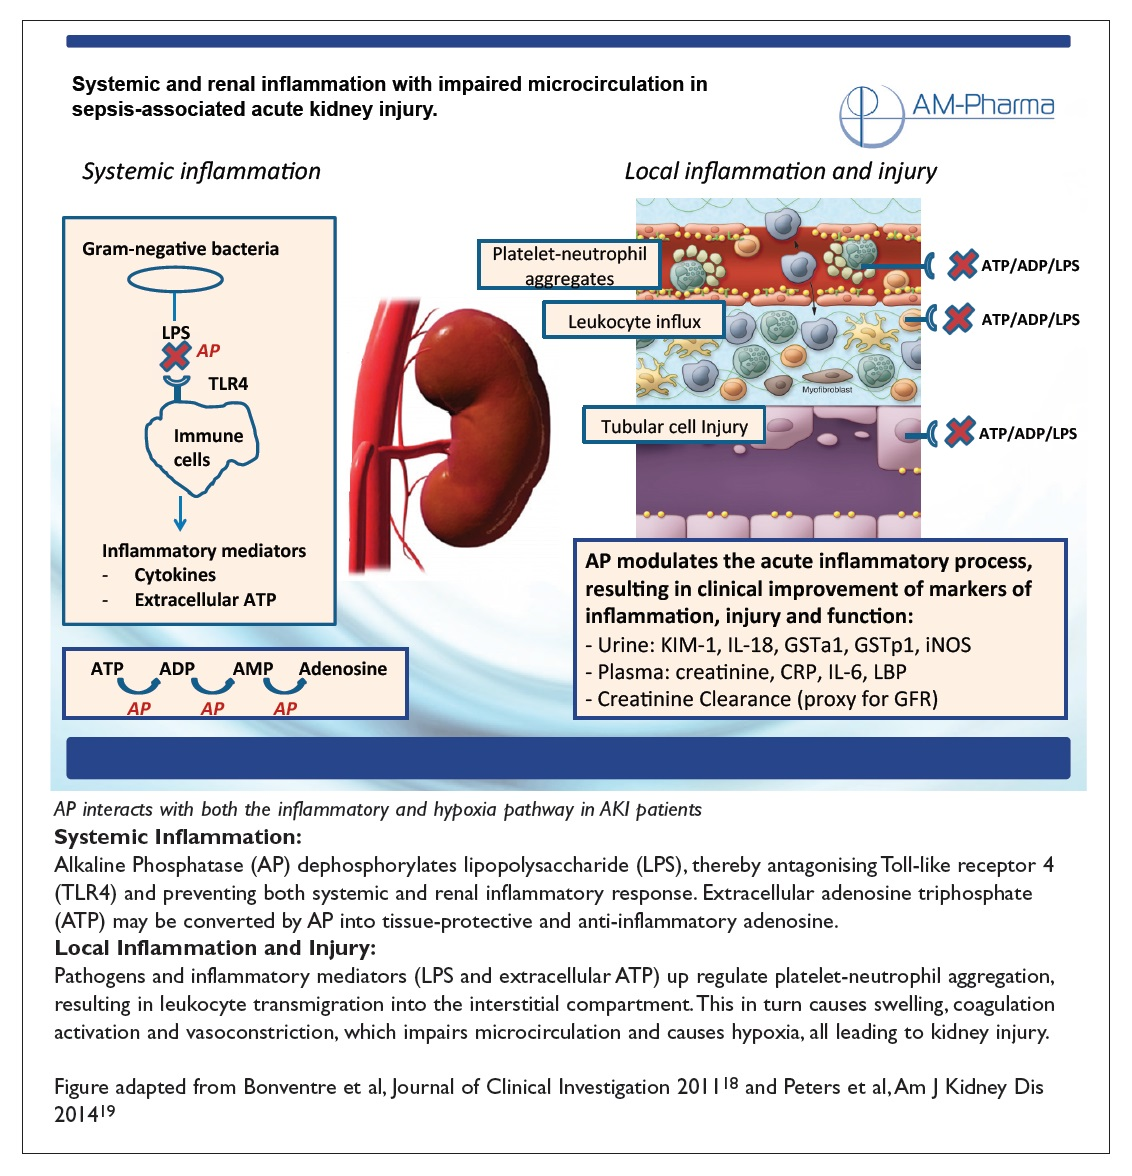 Figure 2 Systemic and renal inflammation with impaired microcirculation in sepsis-associated acute kidney injury